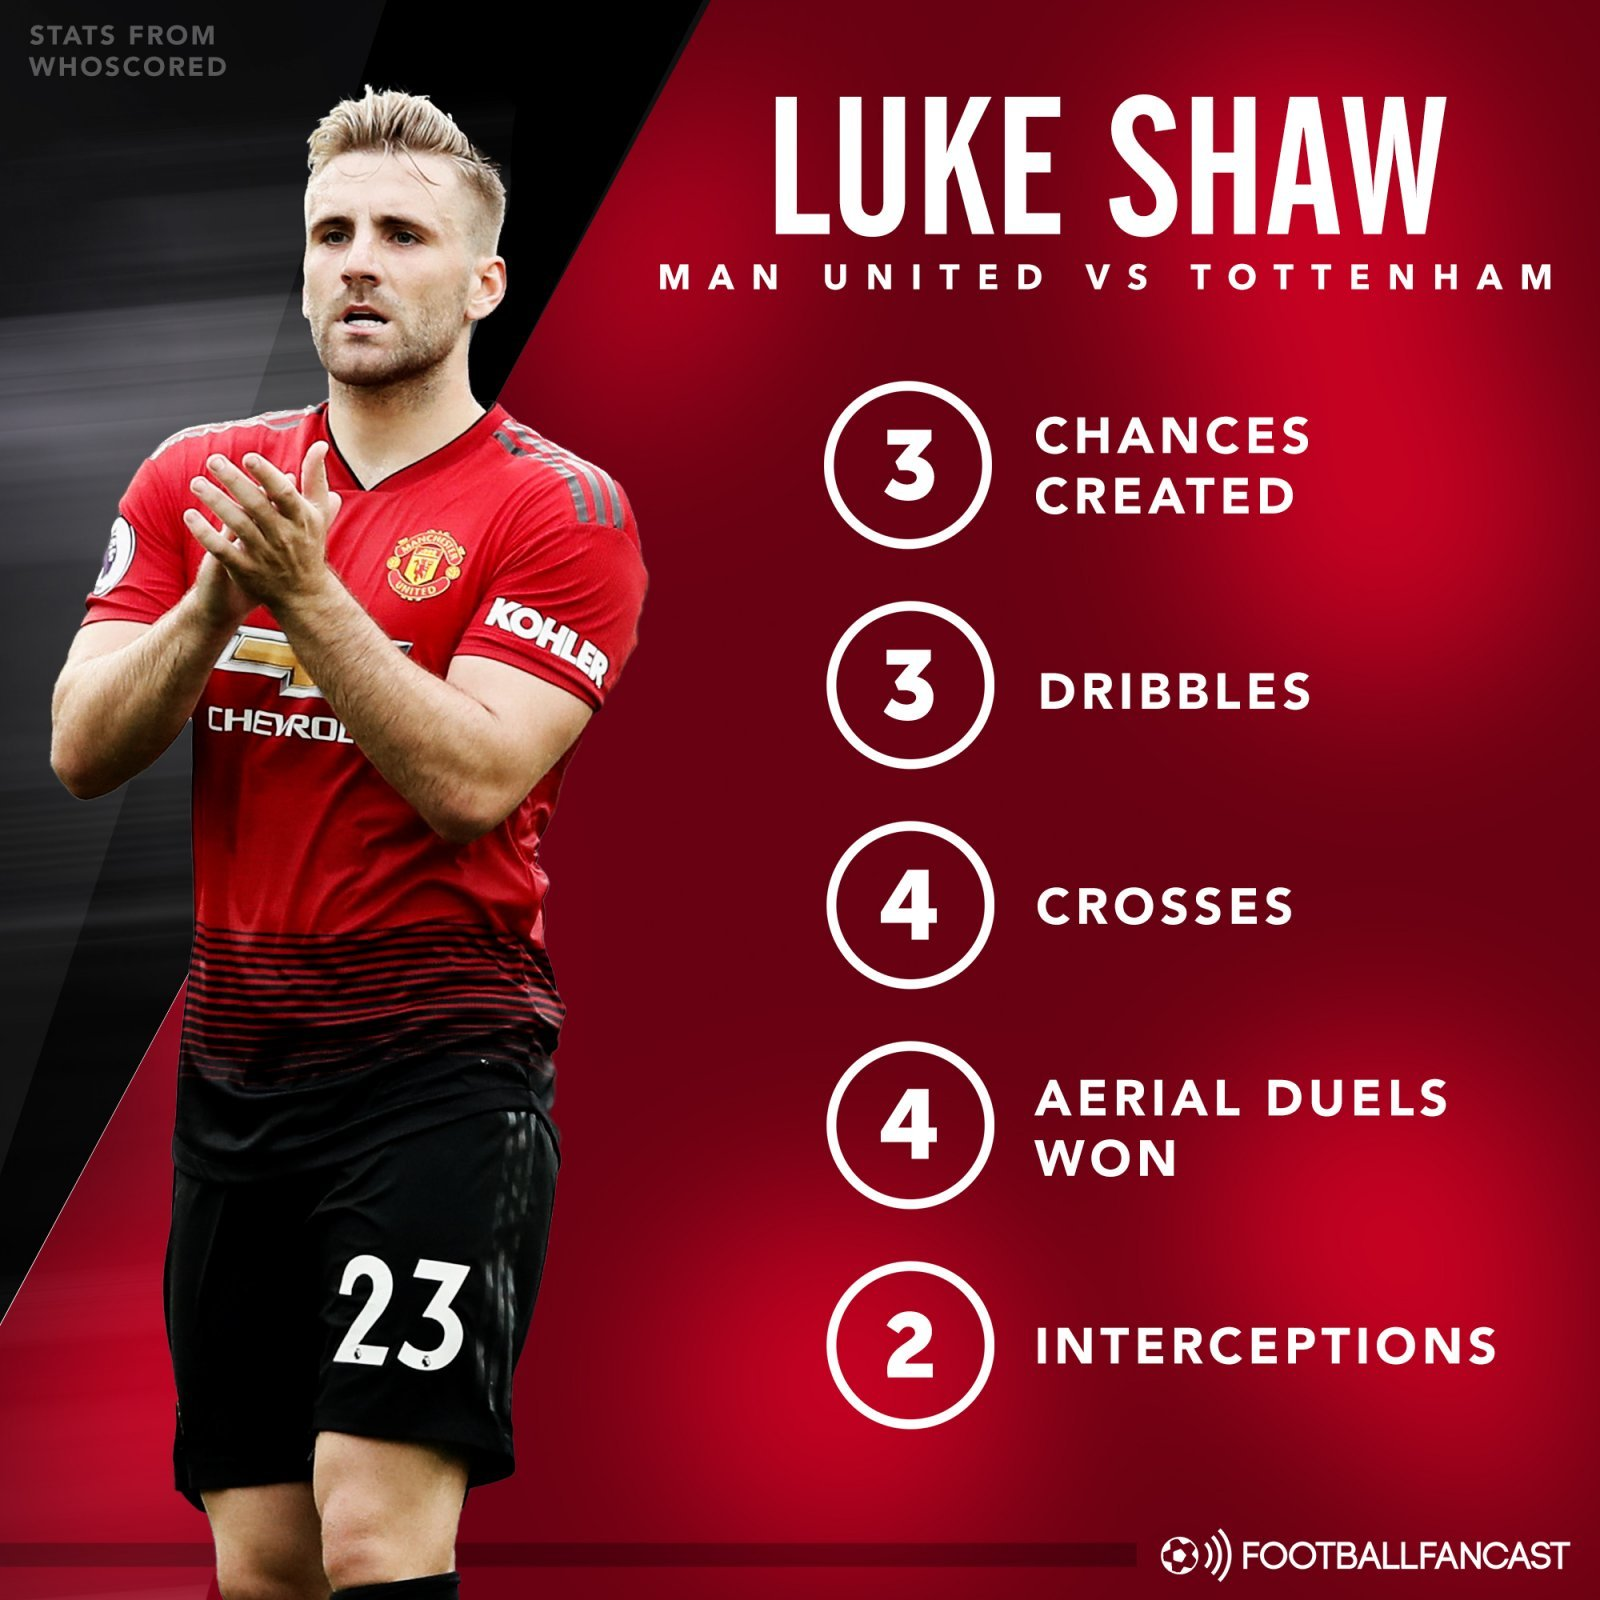 Luke Shaw's stats from Man United's defeat to Tottenham